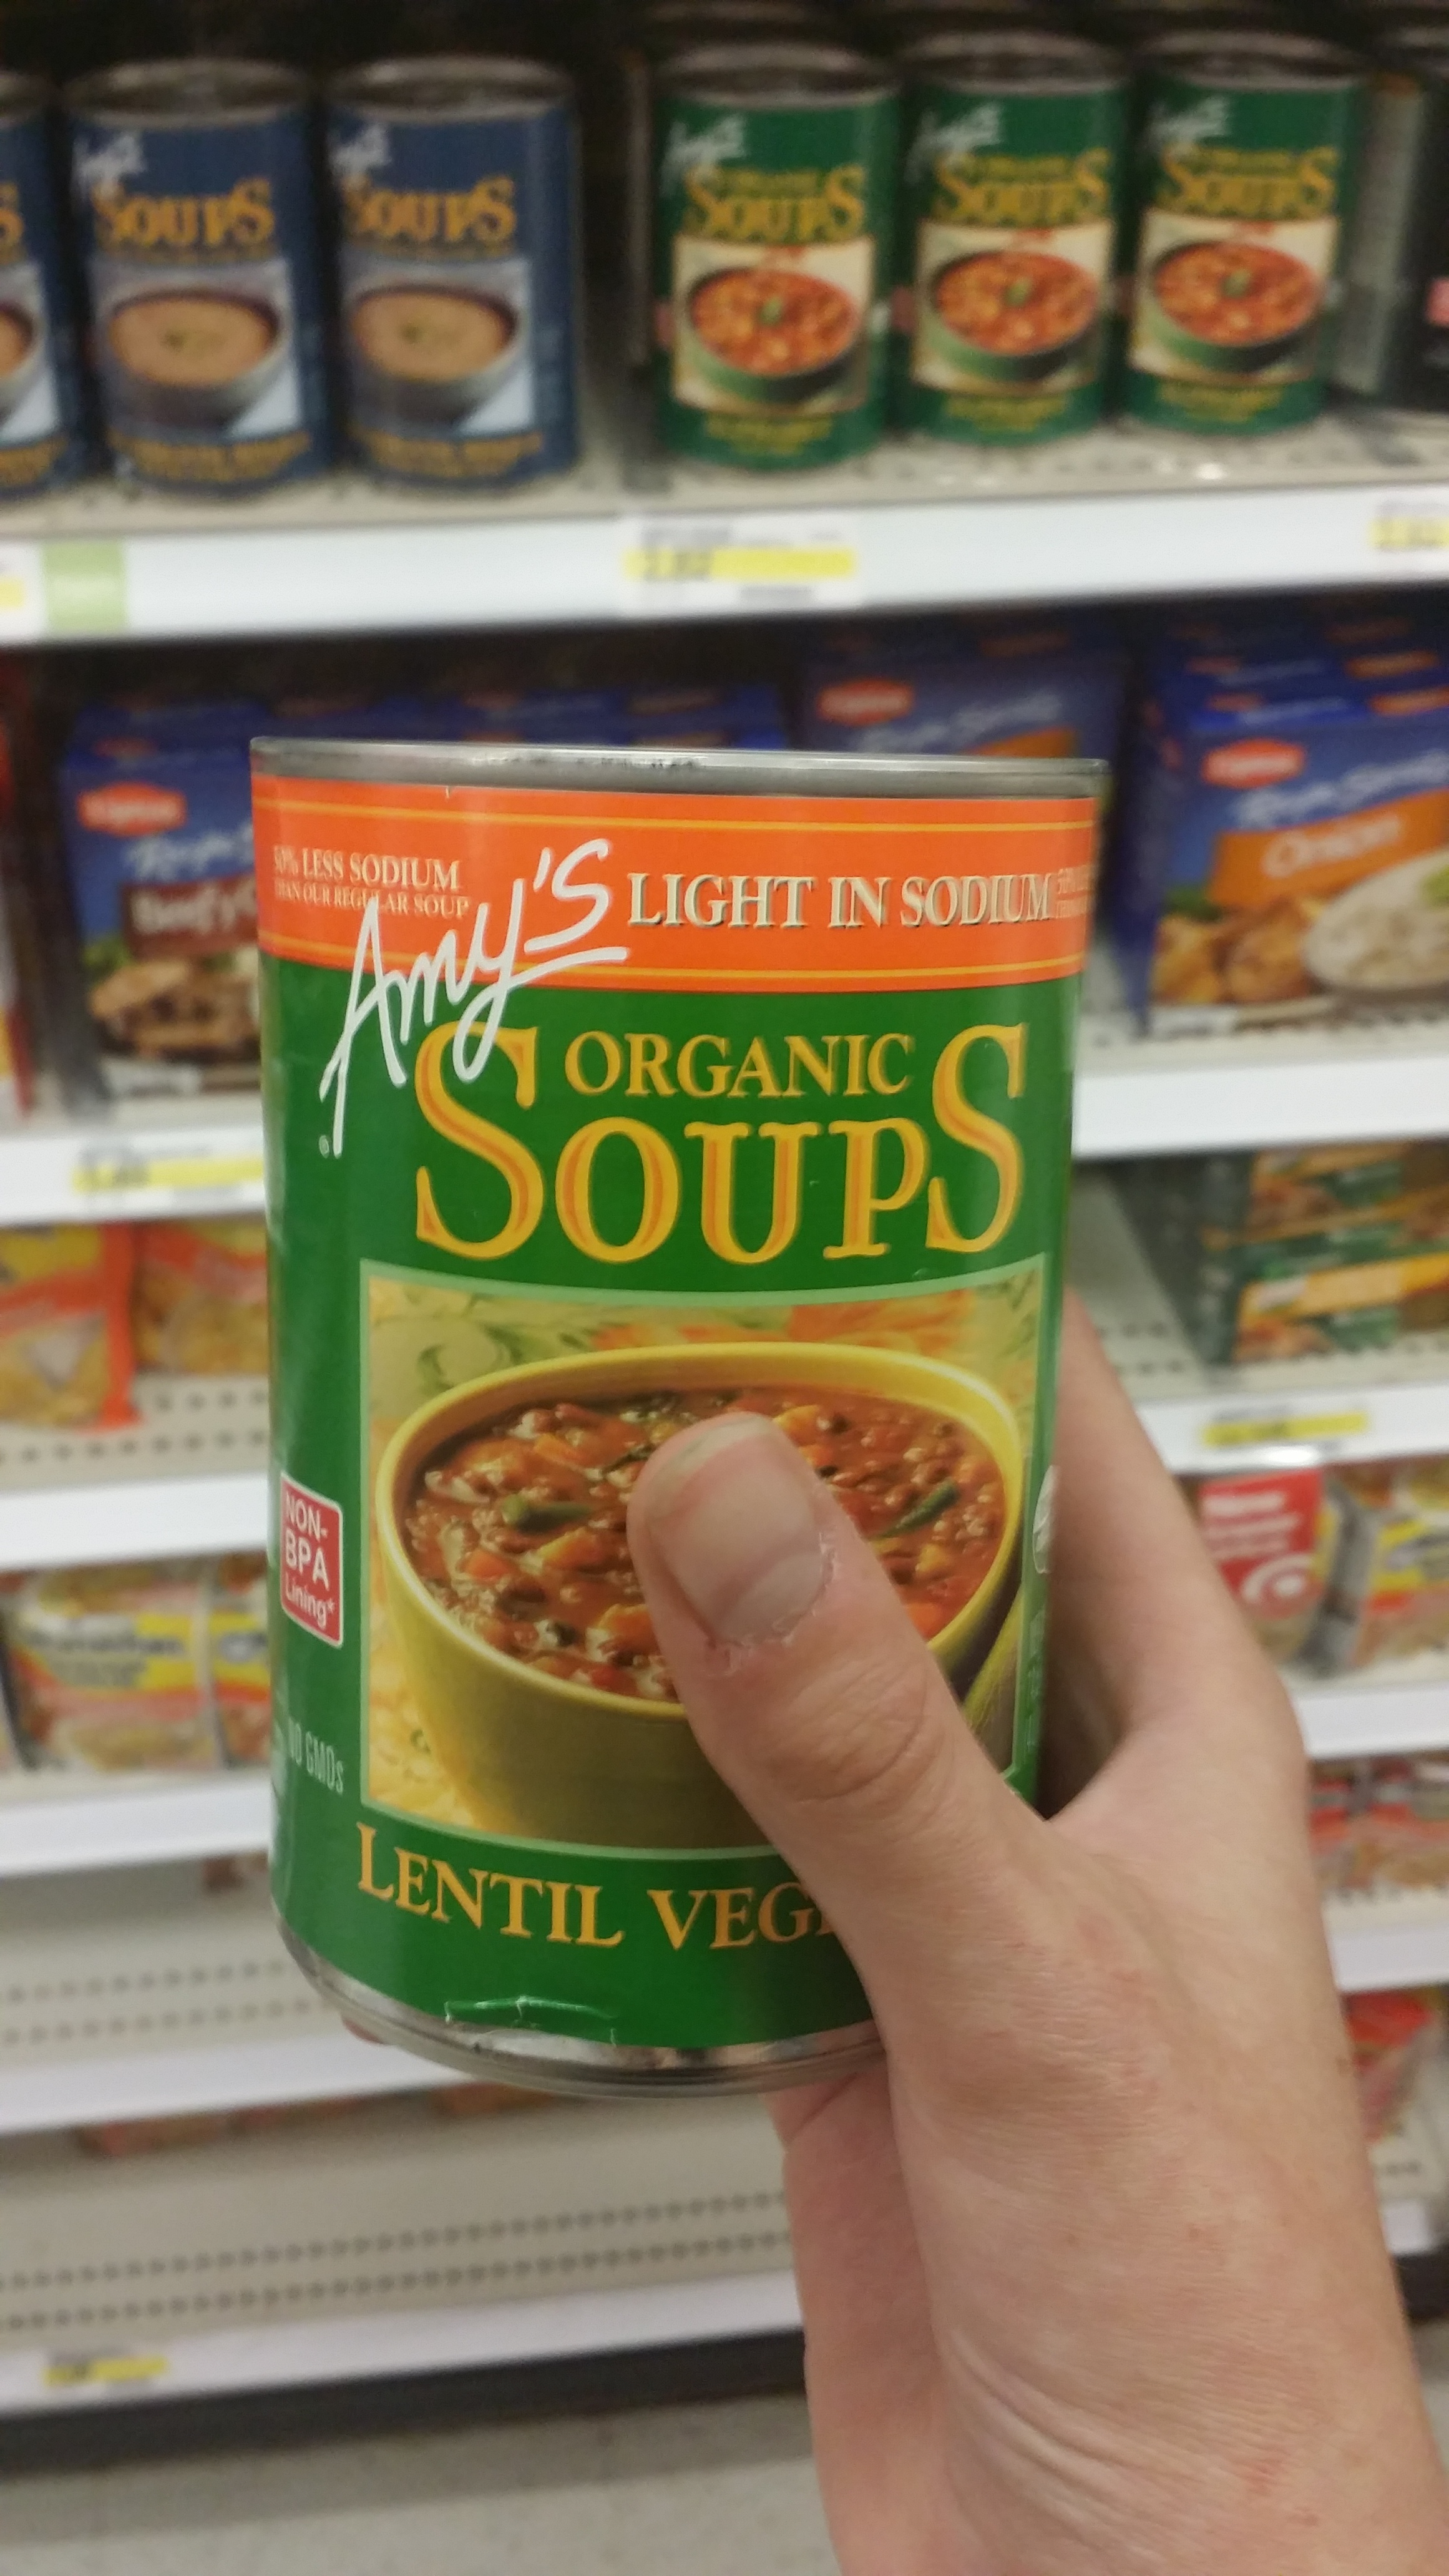 Justin always buys me this soup when I'm sick. It's great to know that Target carries it and a large selection of Amy's.